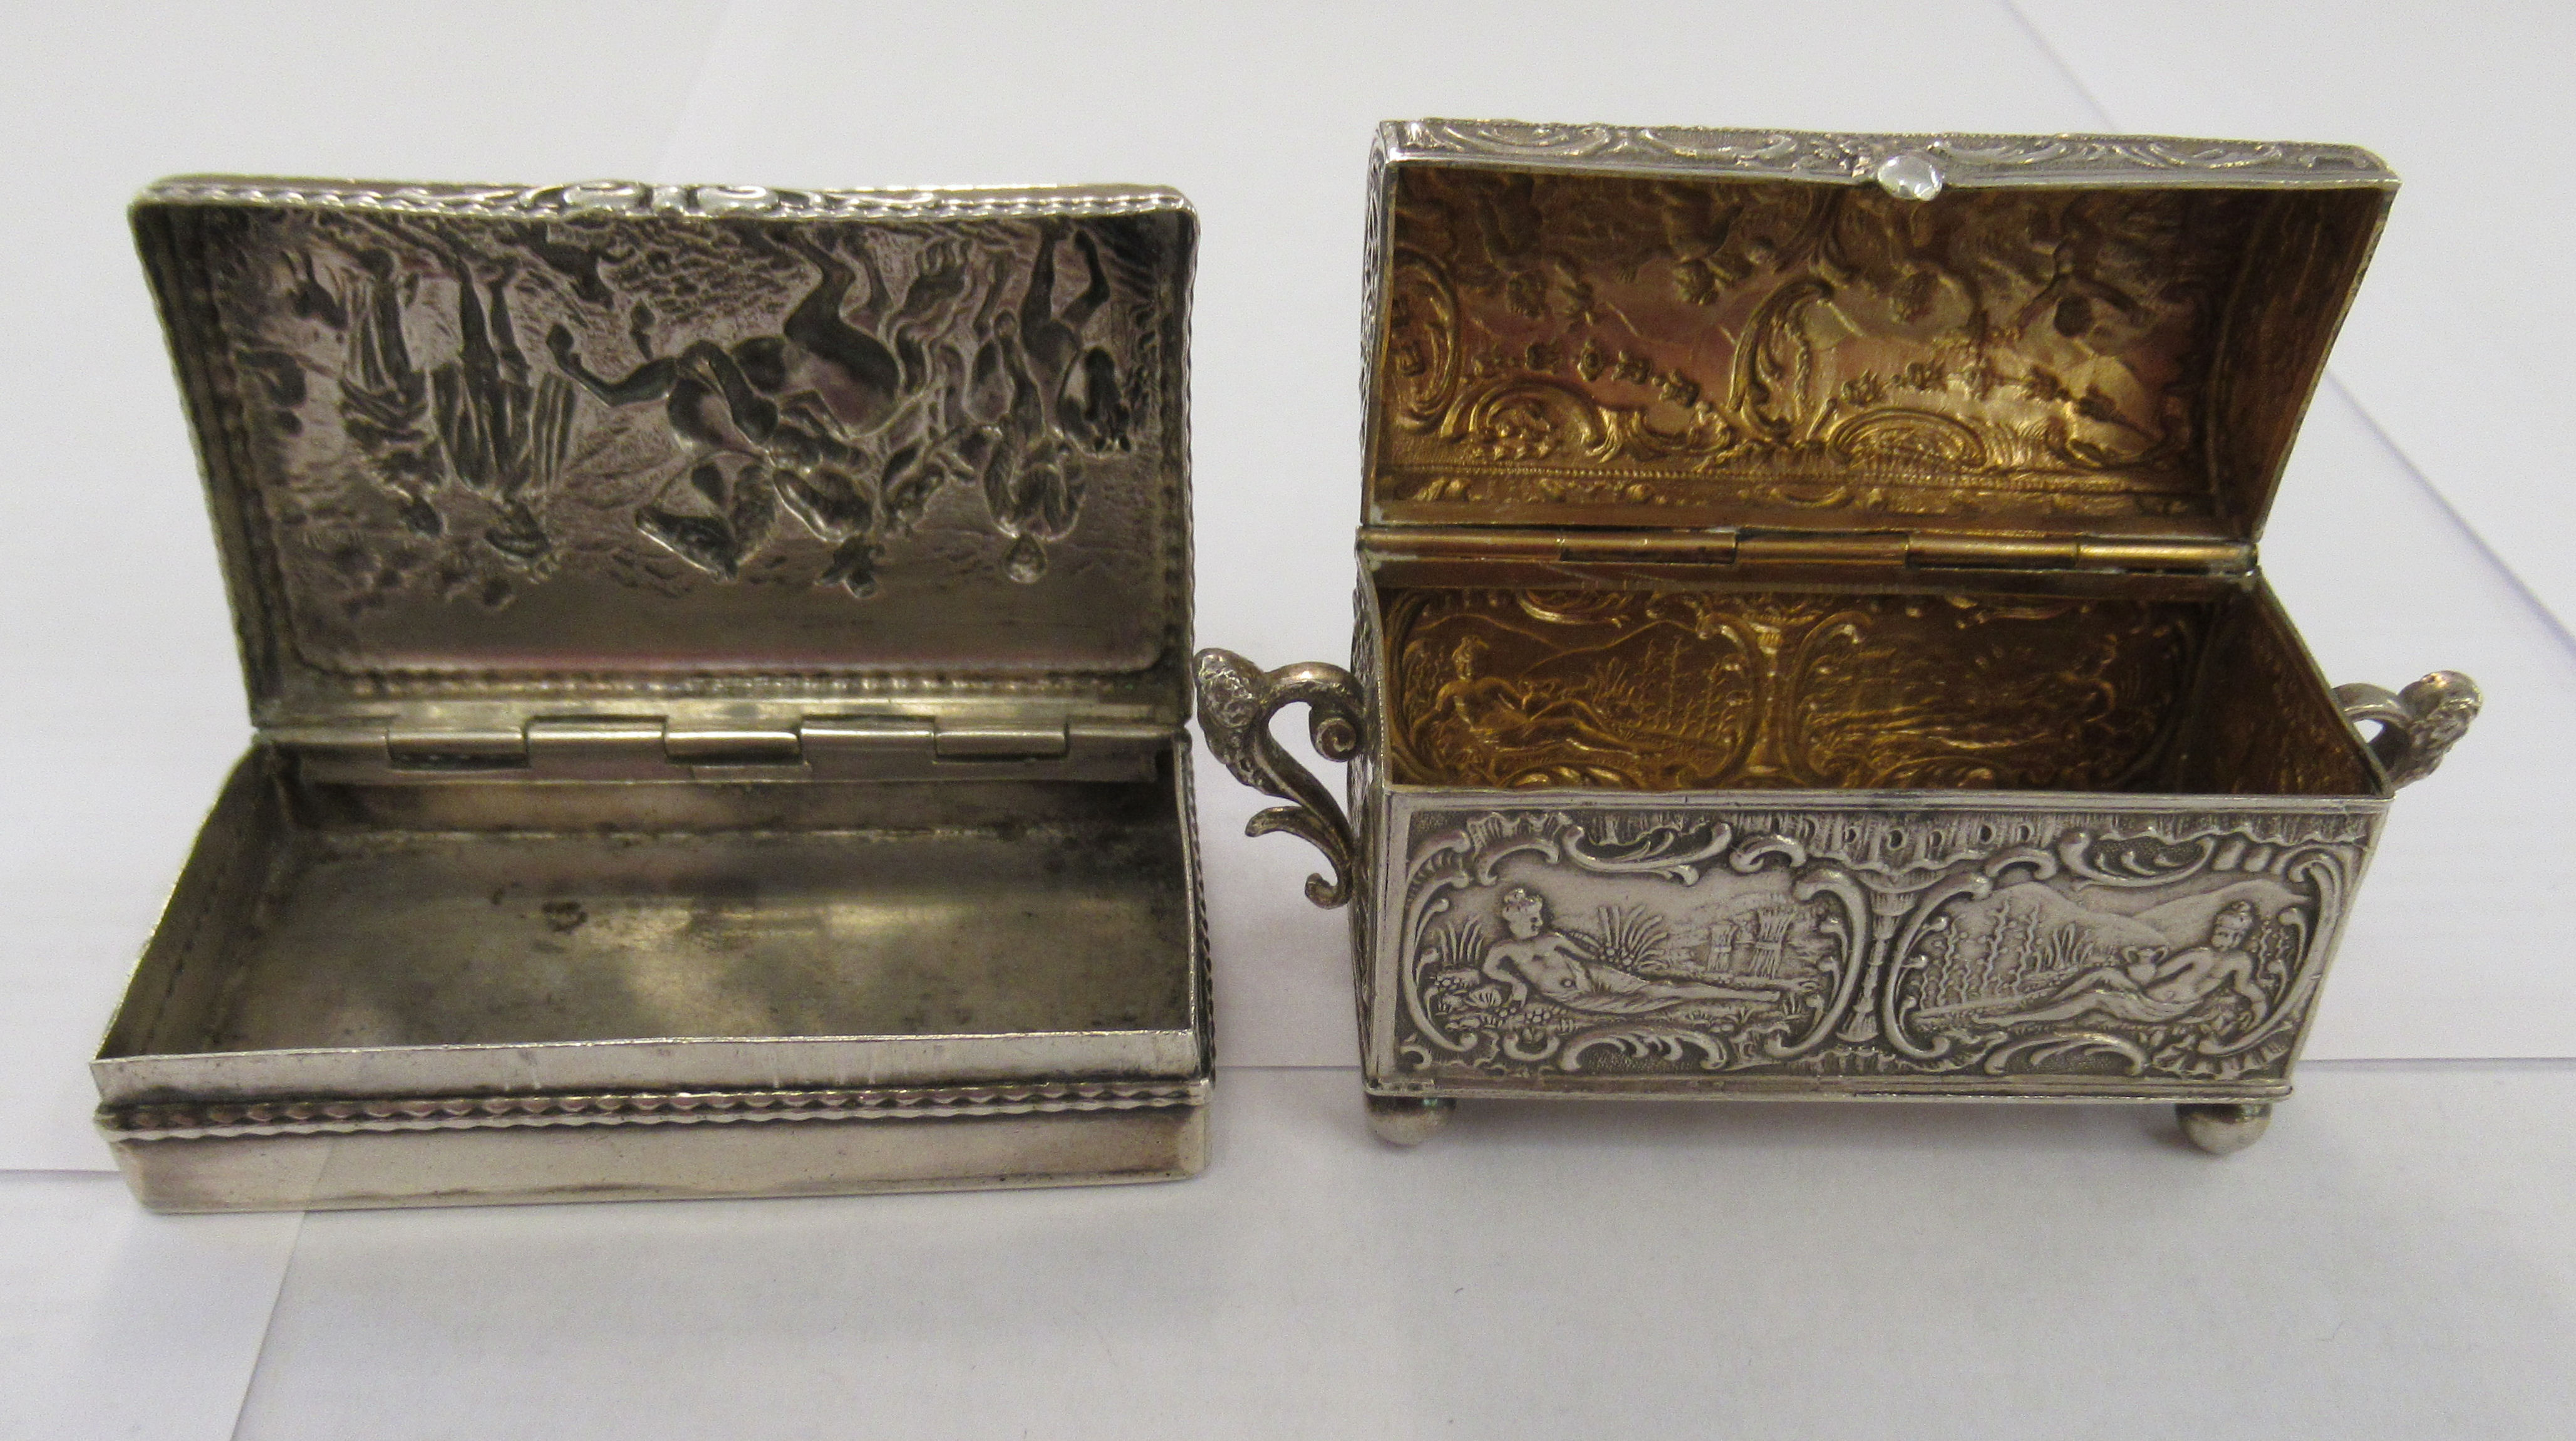 Two early 20thC Continental silver coloured metal items, viz. a domed twin handled, casket deign - Image 2 of 5